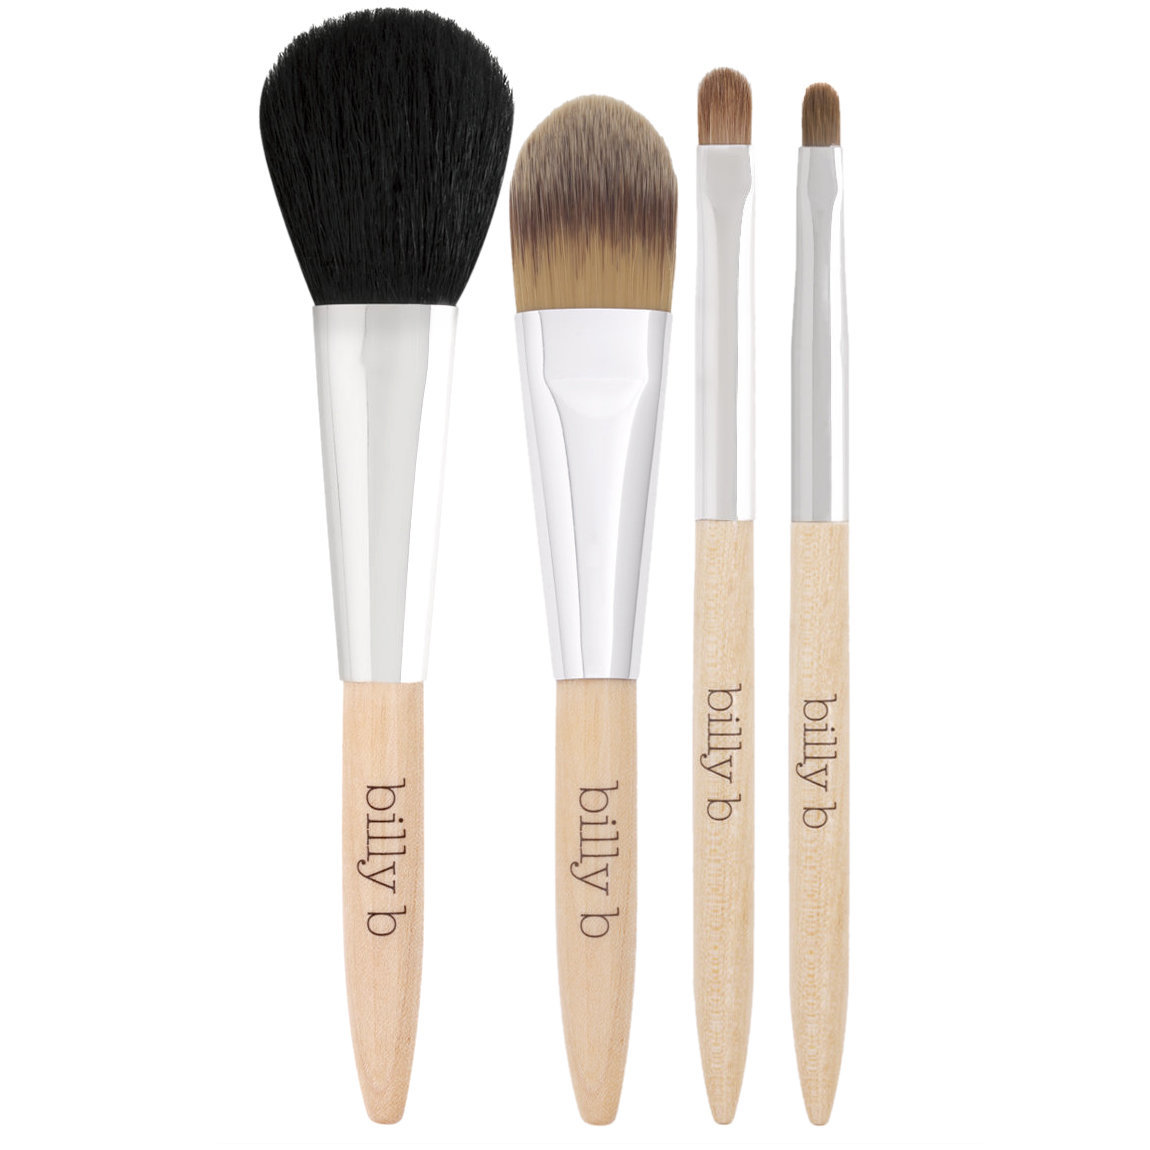 Billy B Skin Brush Set product swatch.